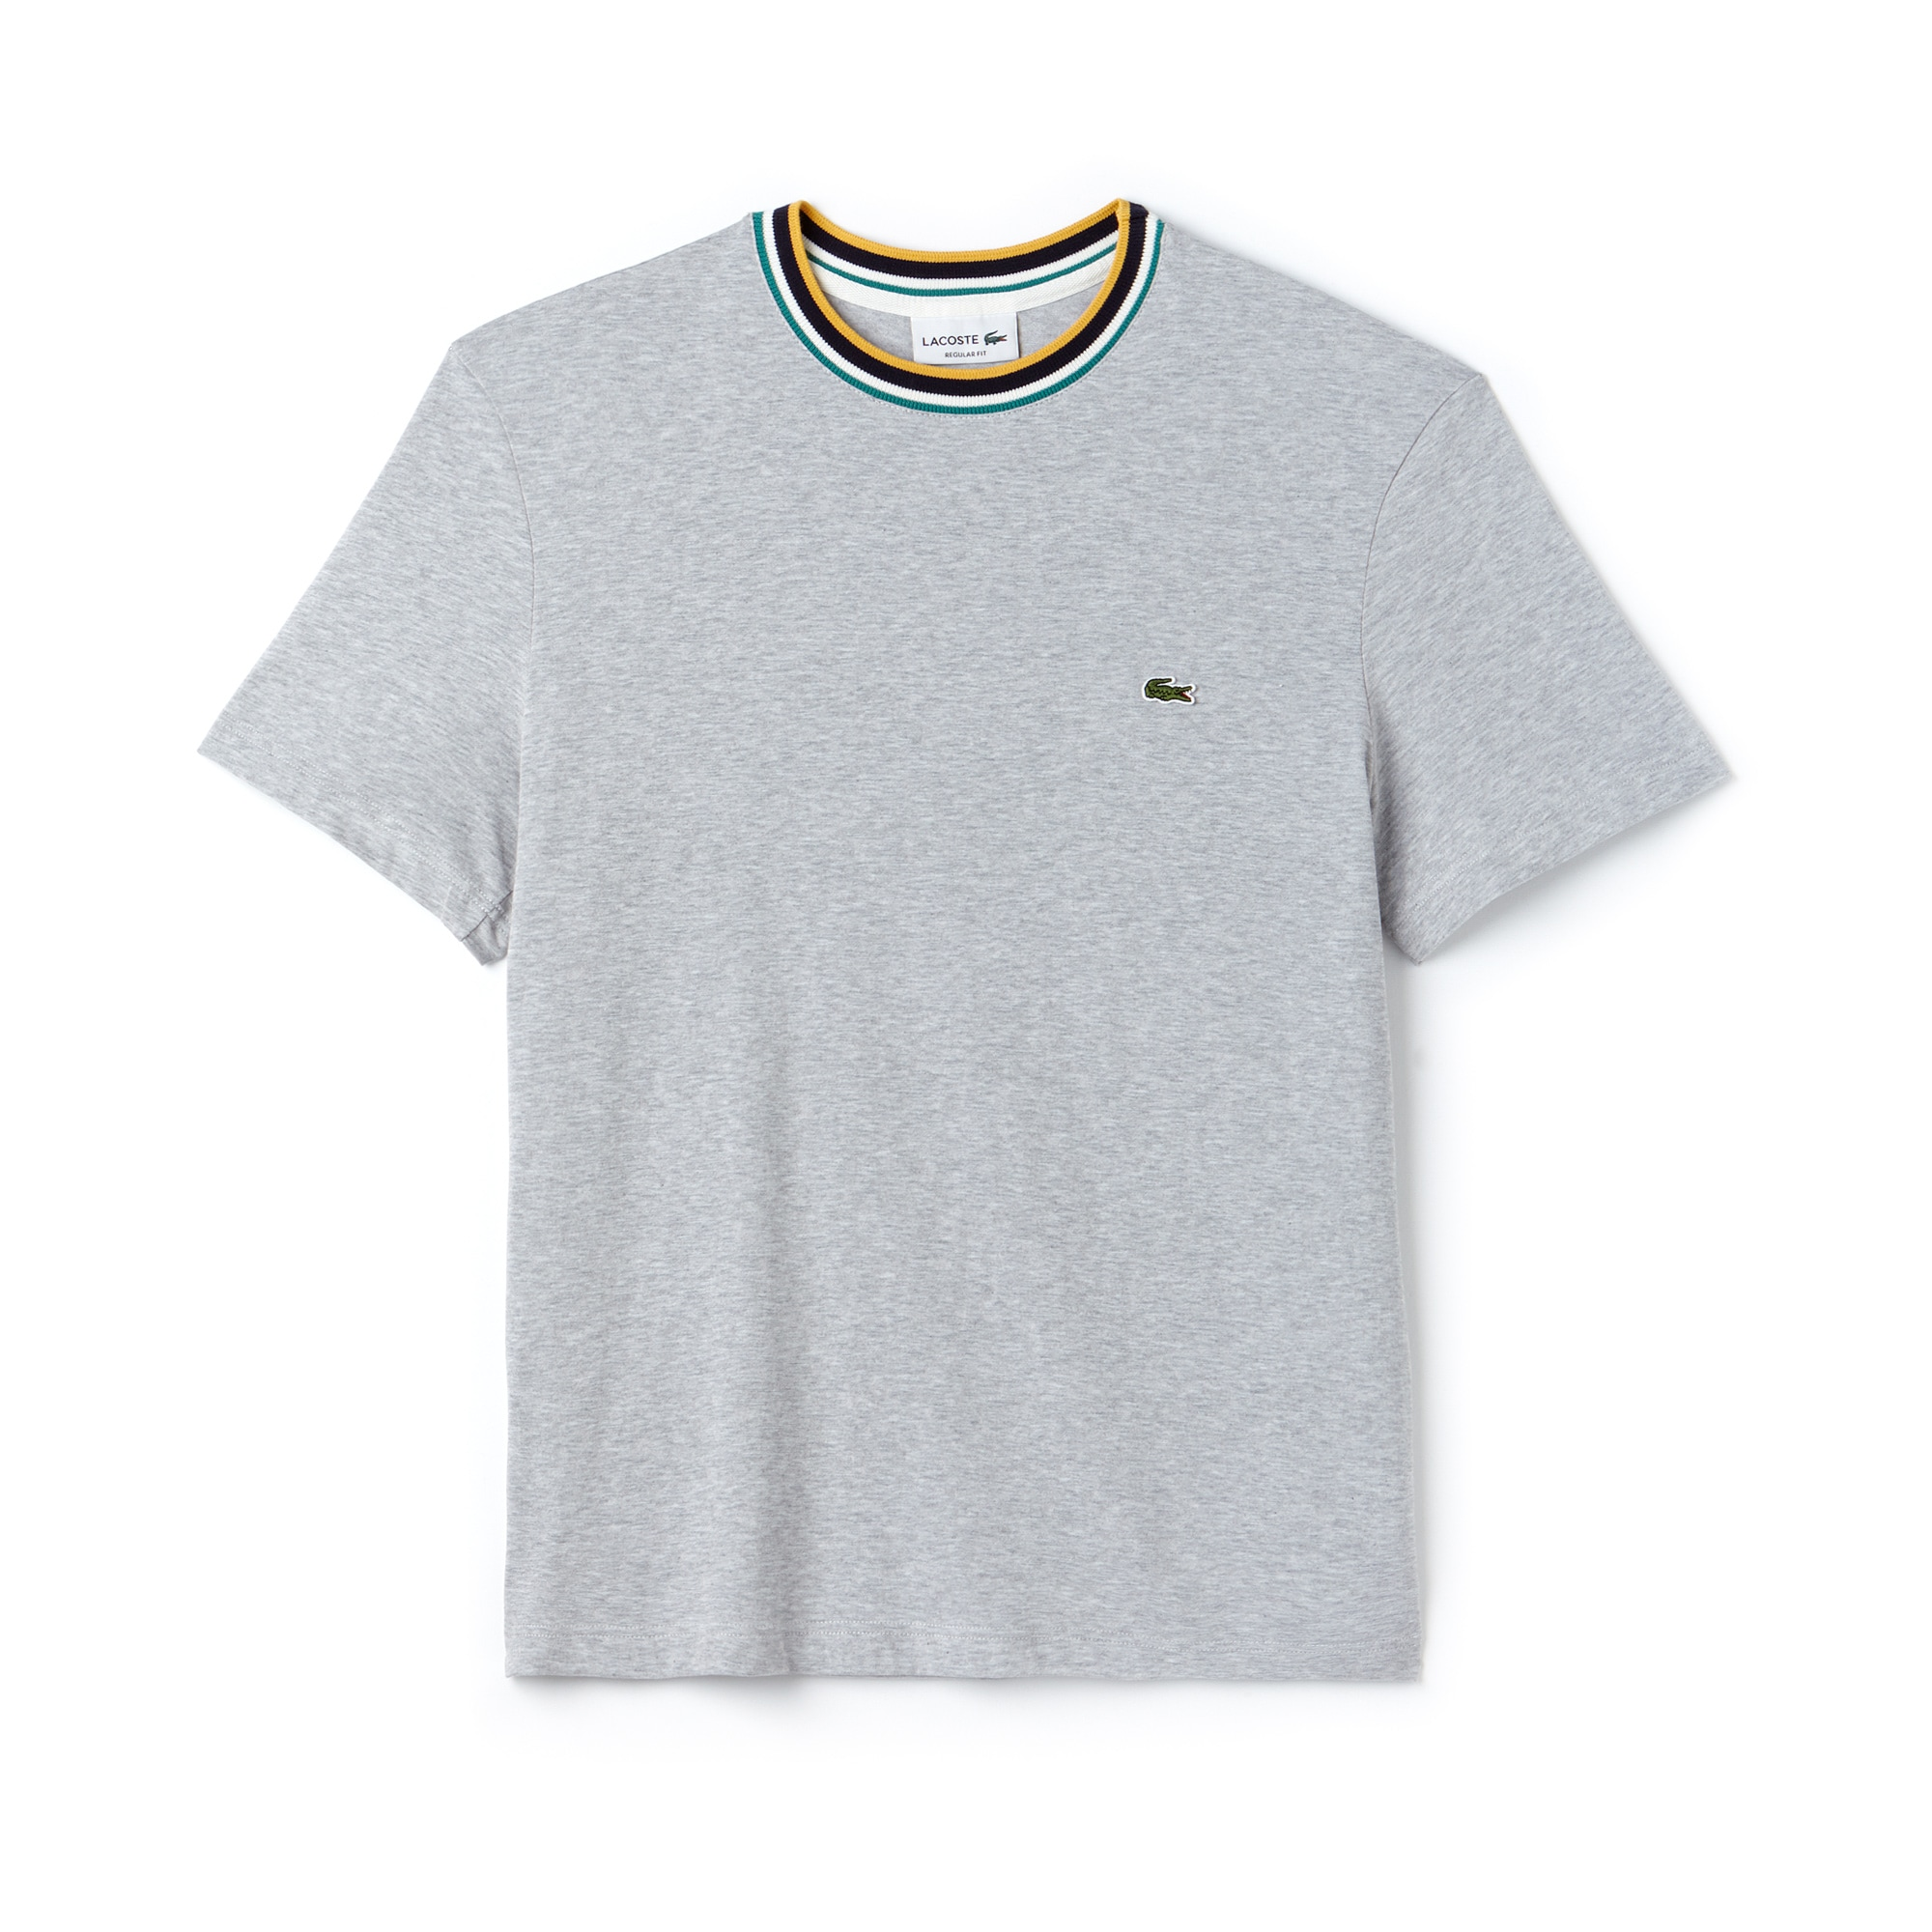 라코스테 Lacoste Mens Striped Ribbed Crew Neck Cotton Jersey T-shirt,grey chine